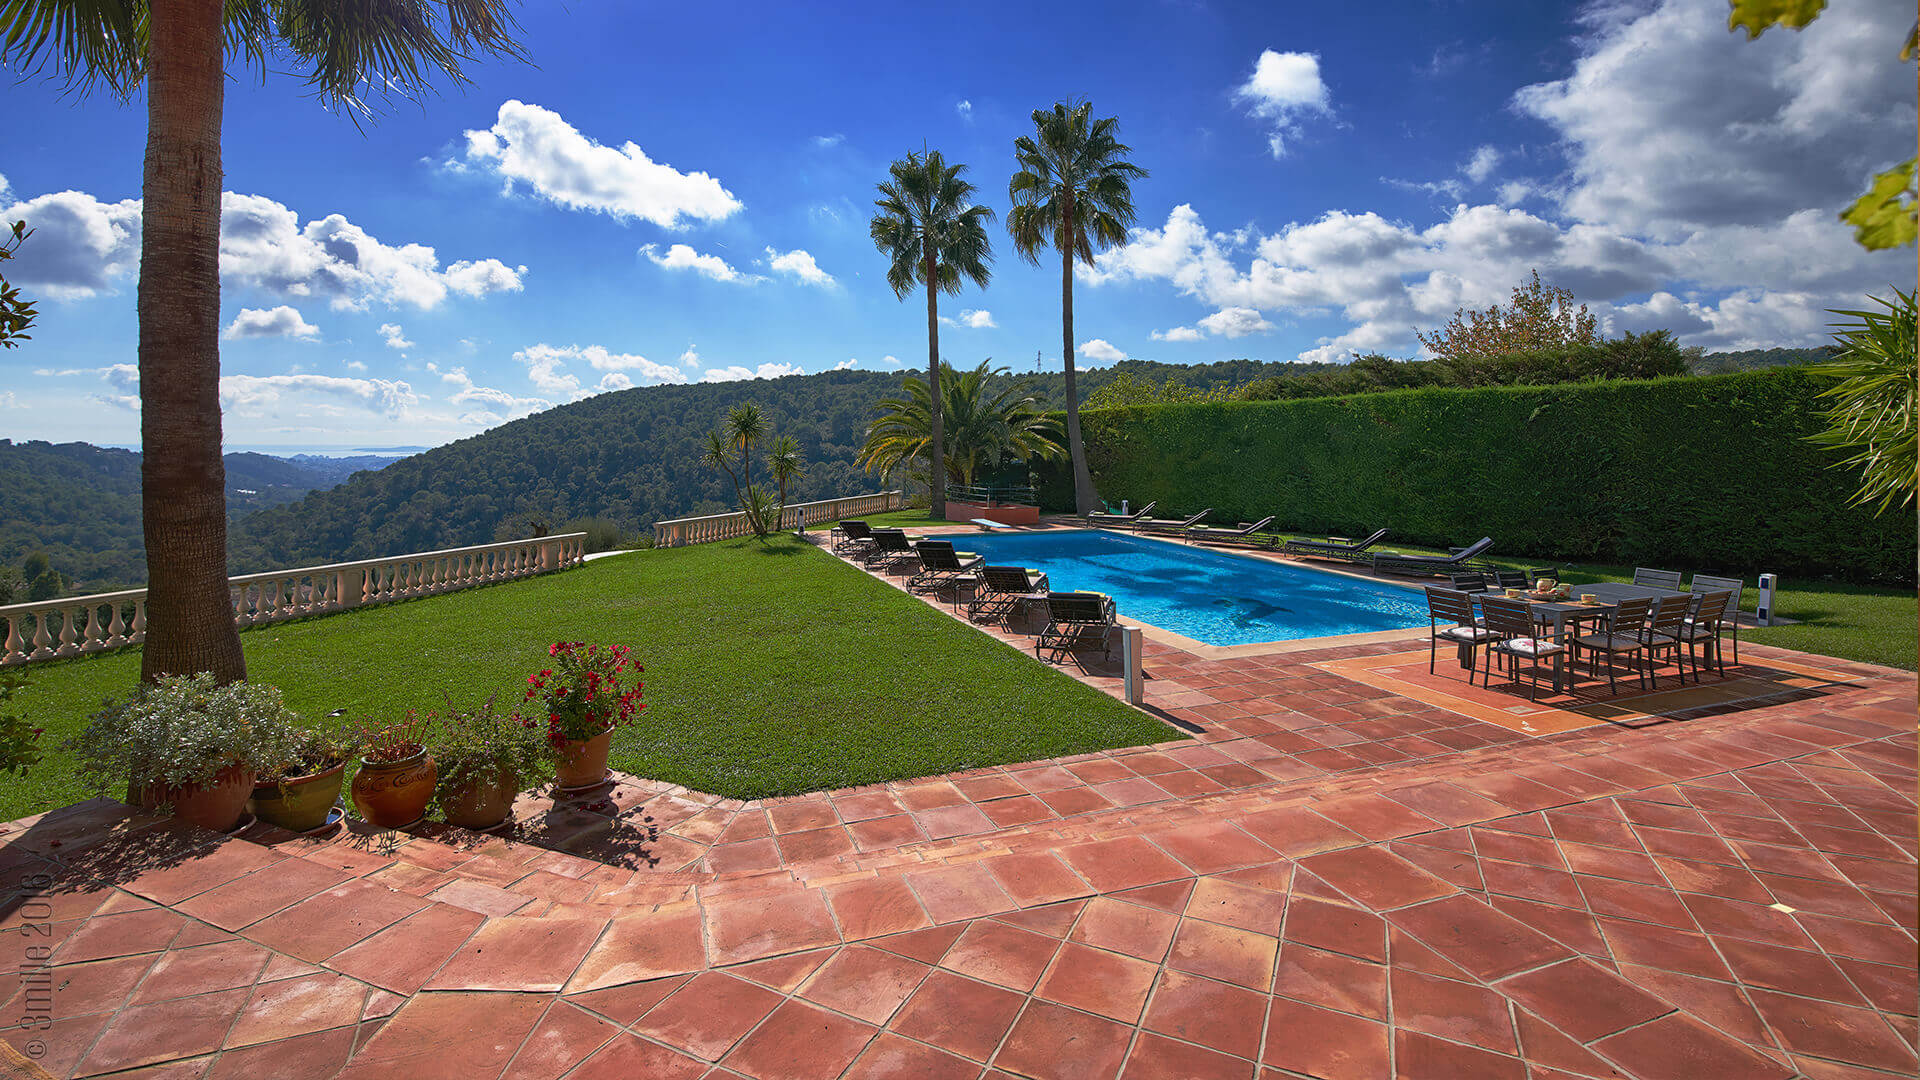 Villa Savoy garden and patio with swimming pool